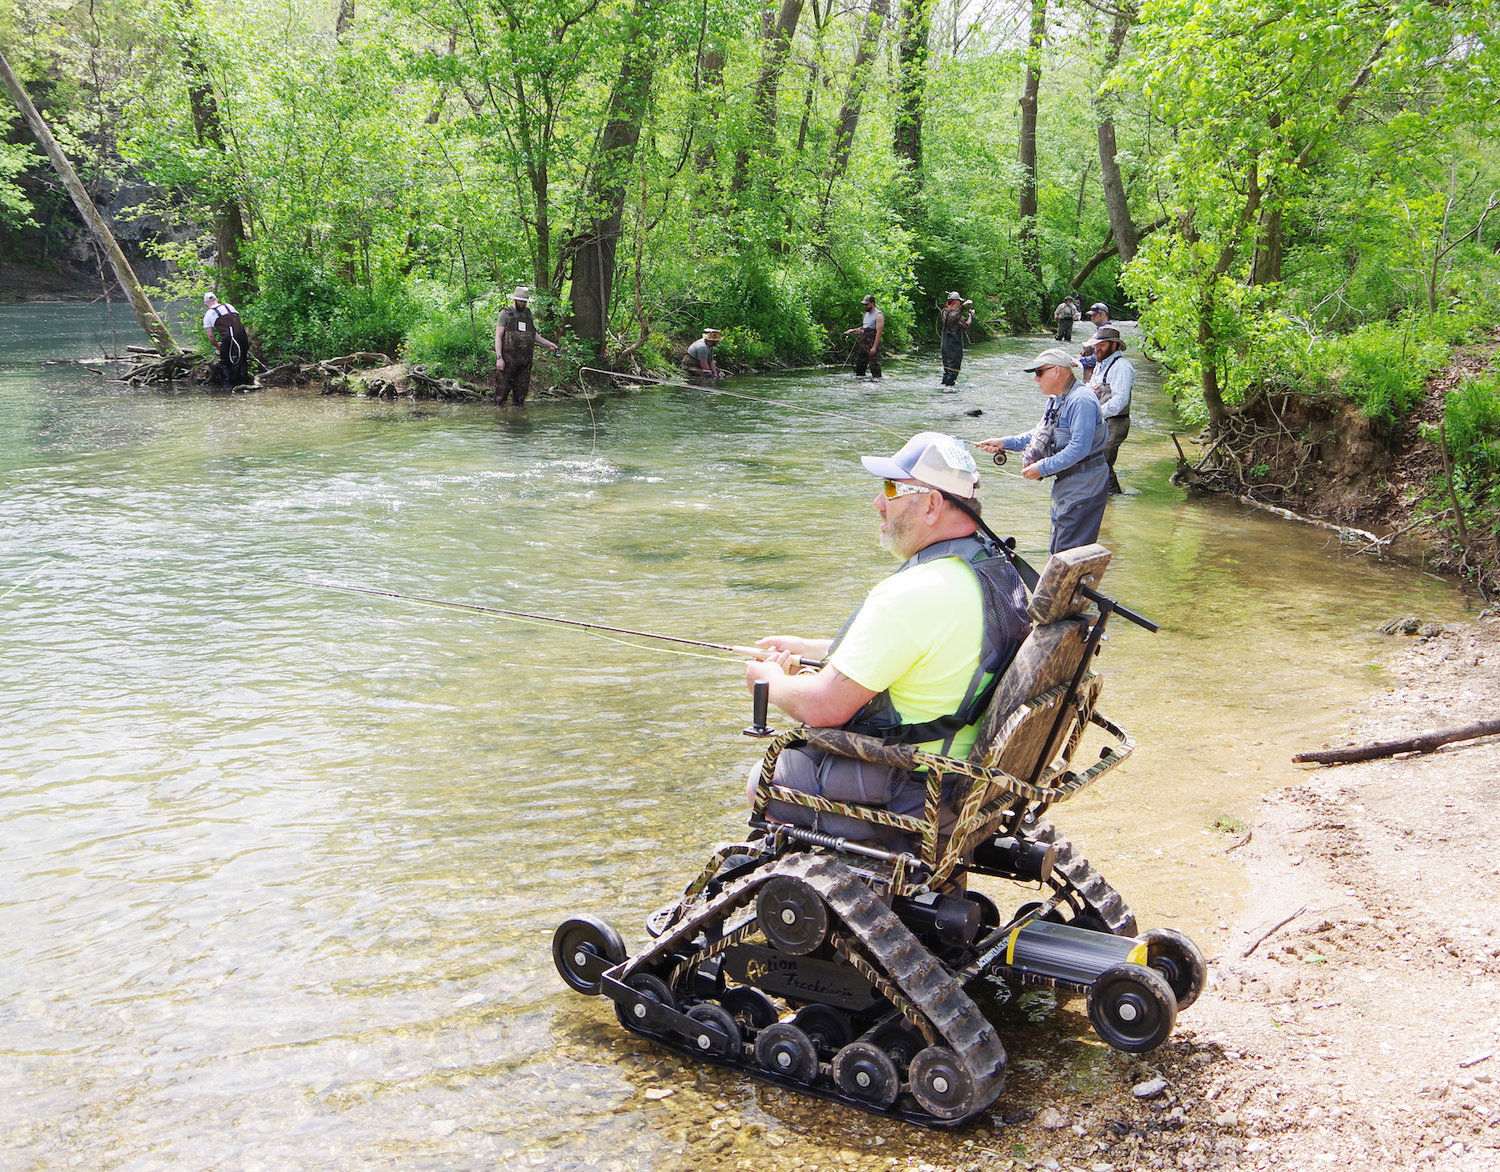 Wally Parker makes use of a track chair loaned to him by the Missouri Department of Conservation as he pursues his share of the 2,500 trout released for Veterans Free Fishing Day.